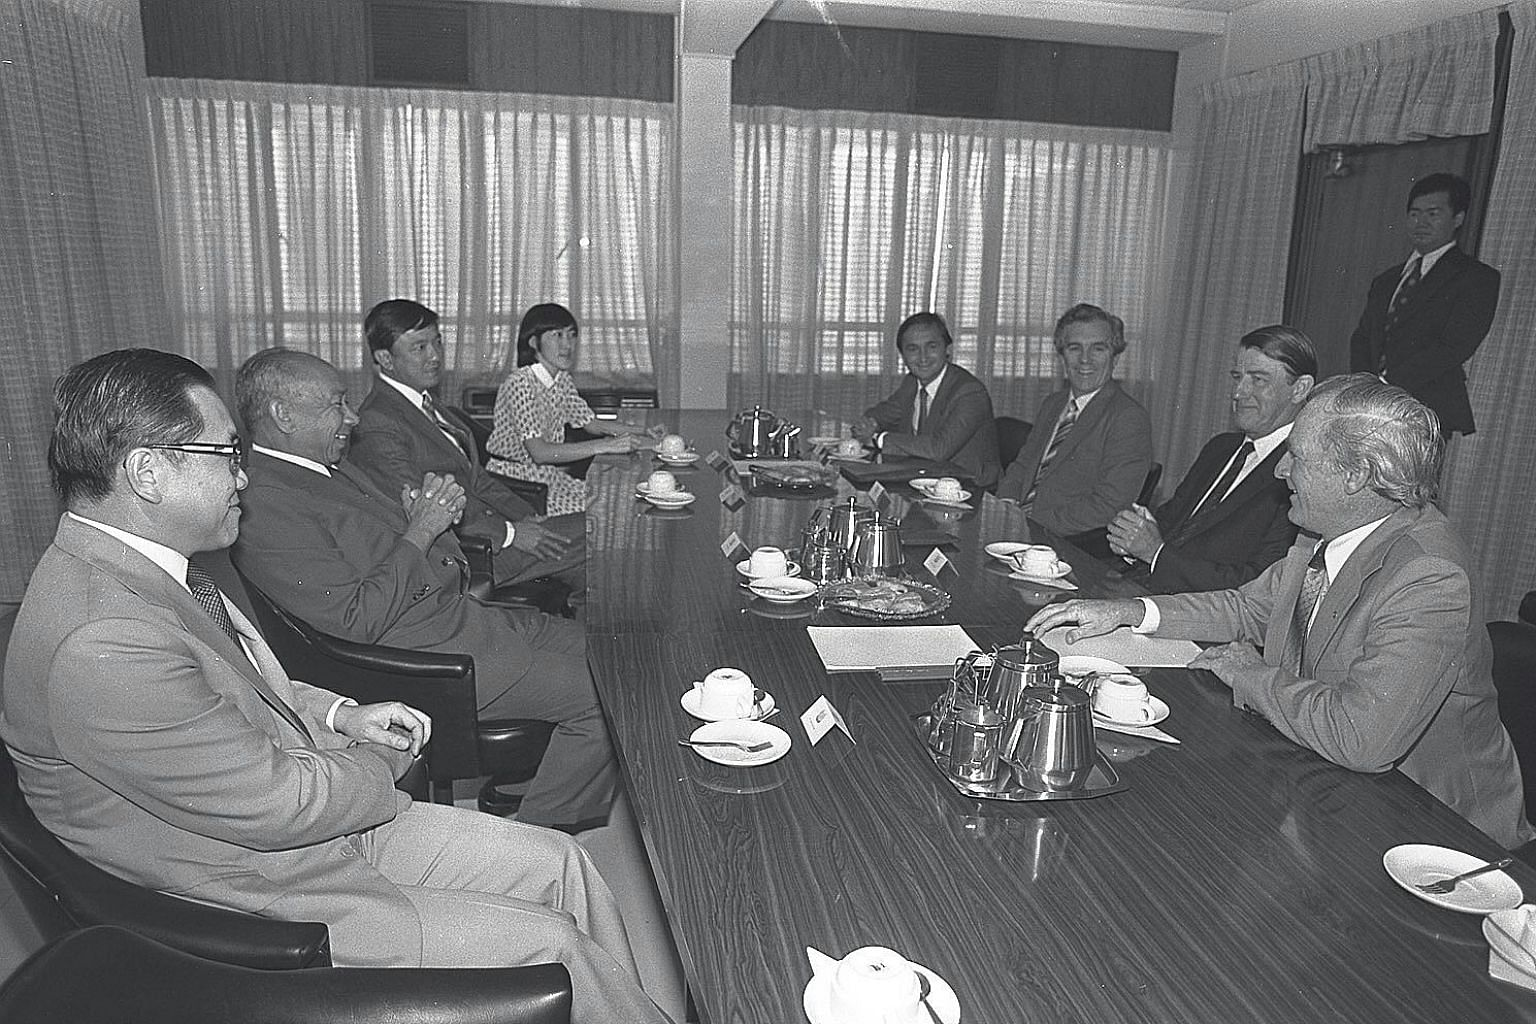 Dr Goh Keng Swee (second from left) and then GIC managing director Yong Pung How (far left) meeting then New South Wales Premier Neville Wran (second from right) and his team in 1982. When Dr Goh approached Mr Yong to helm GIC, Mr Yong was startled,